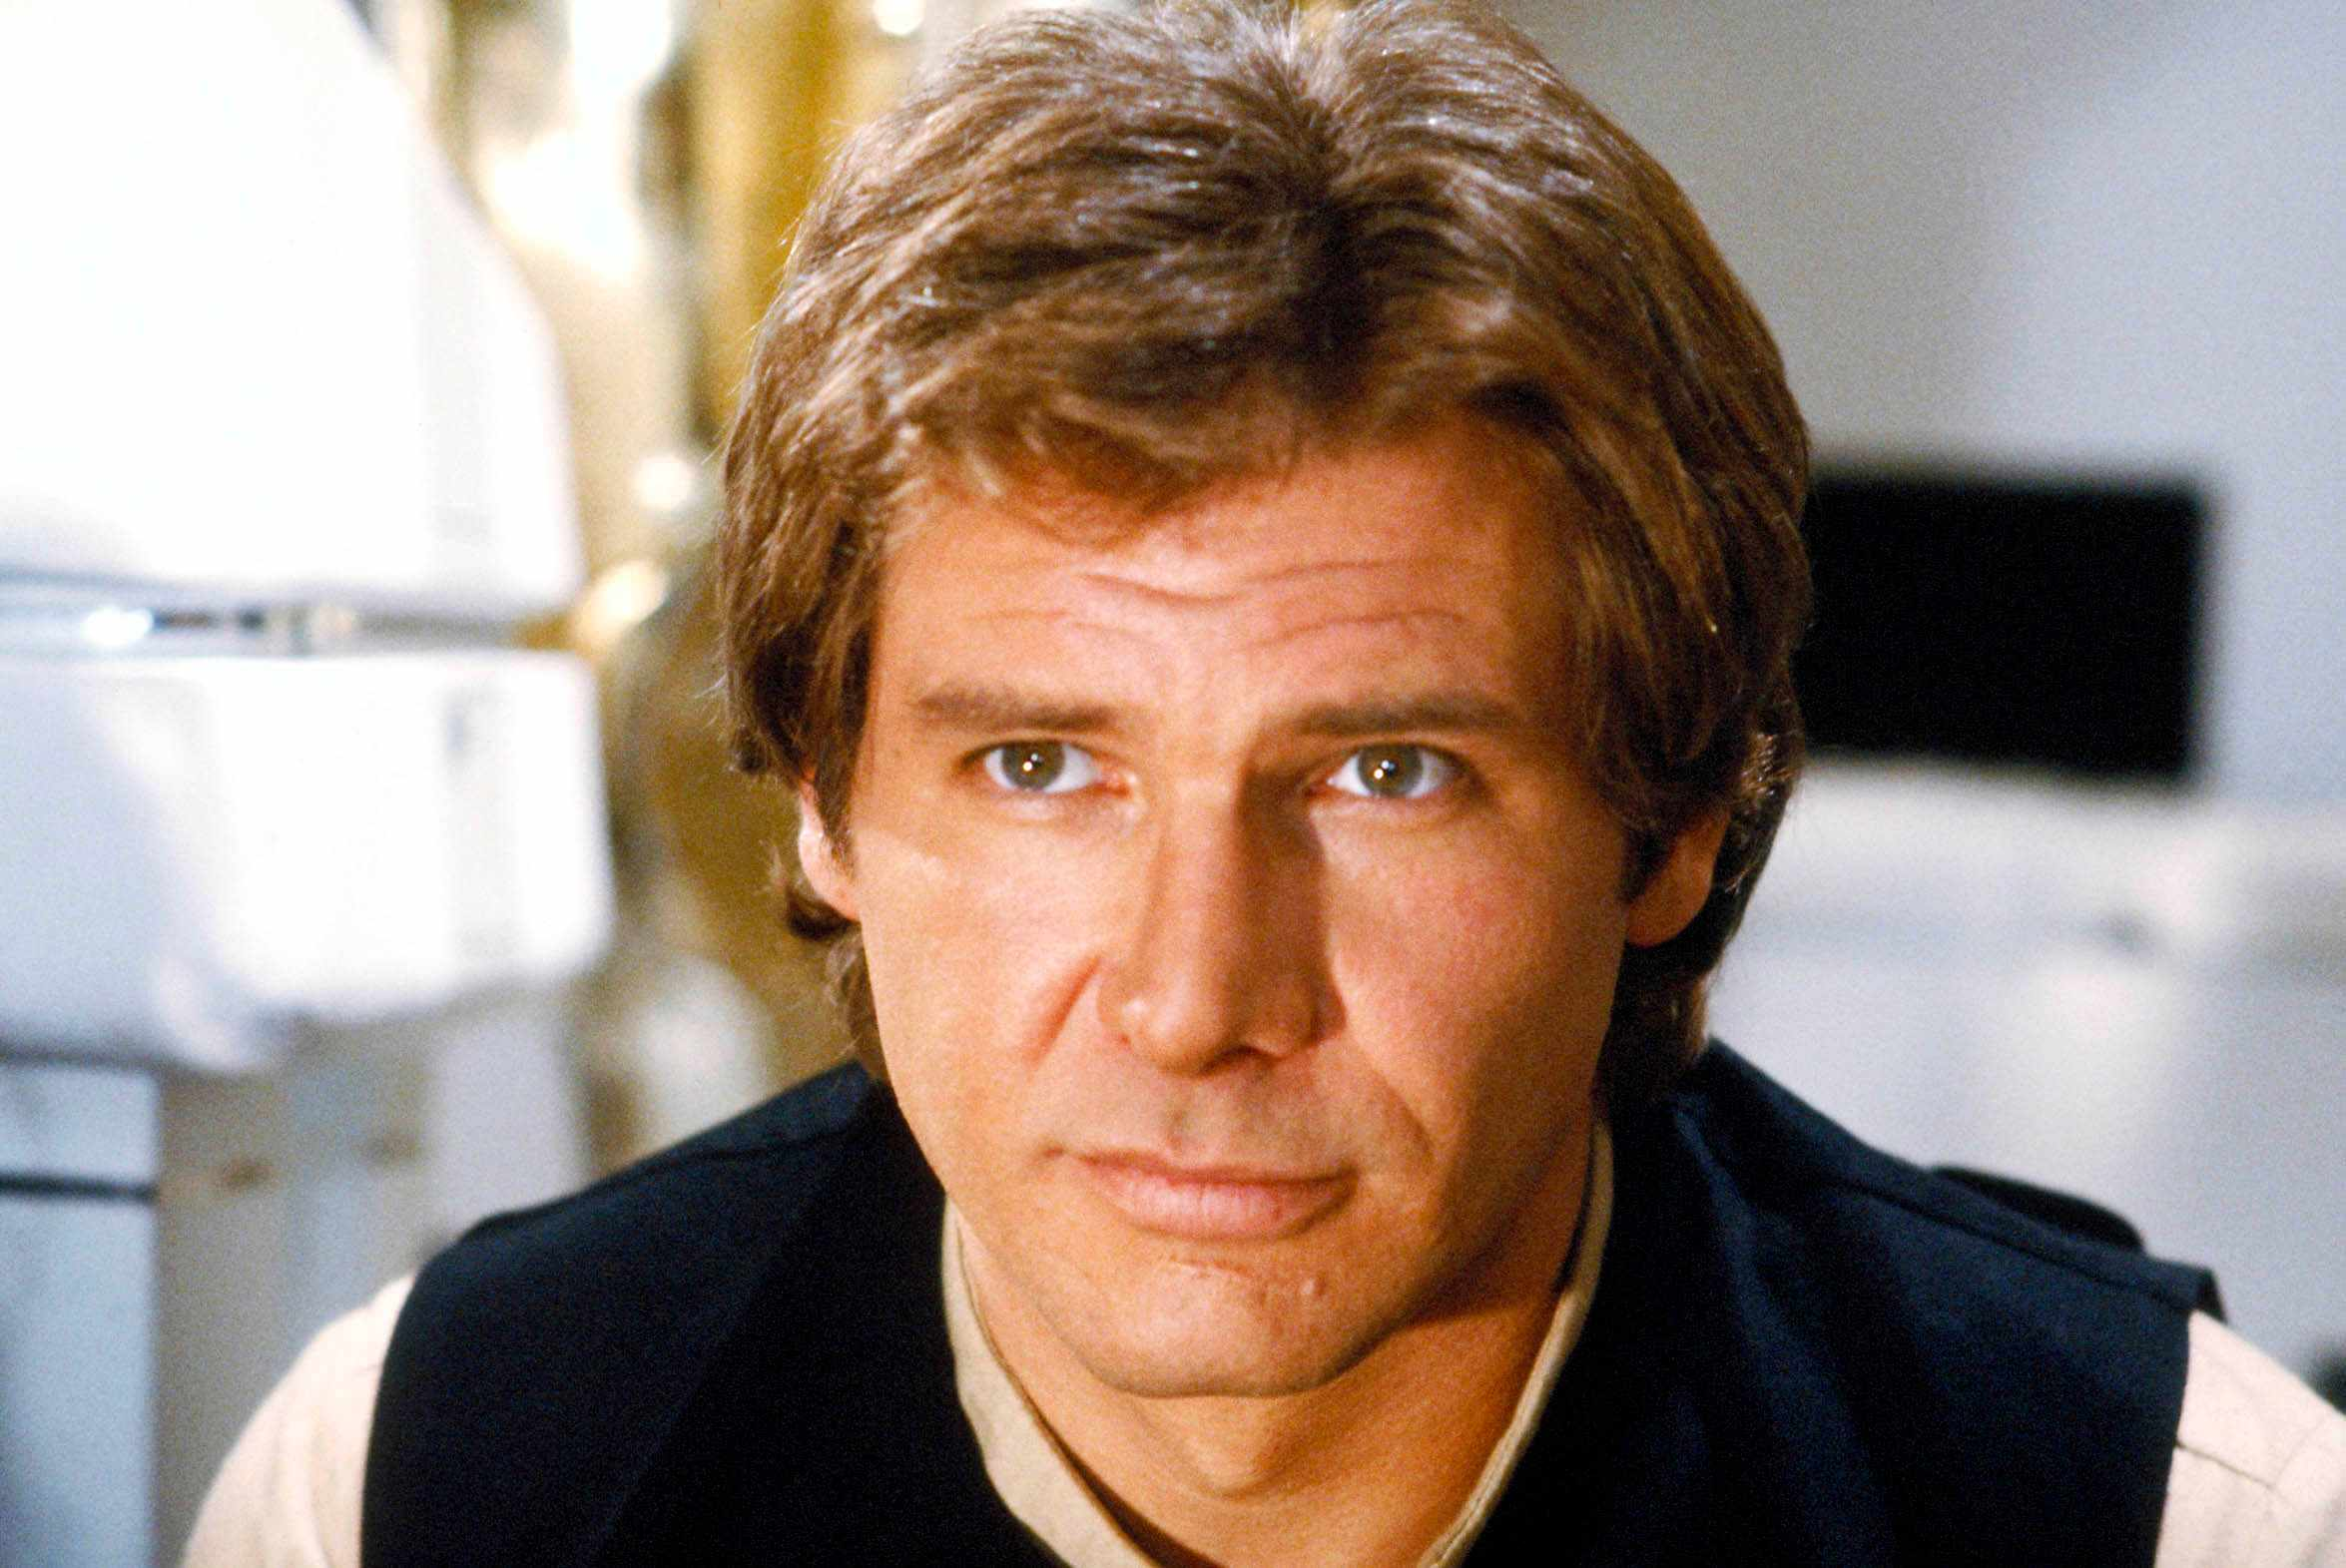 Star Wars Episode VI Return Of The Jedi starring Harrison Ford as Han Solo Lucas Films, Sky pics, TL